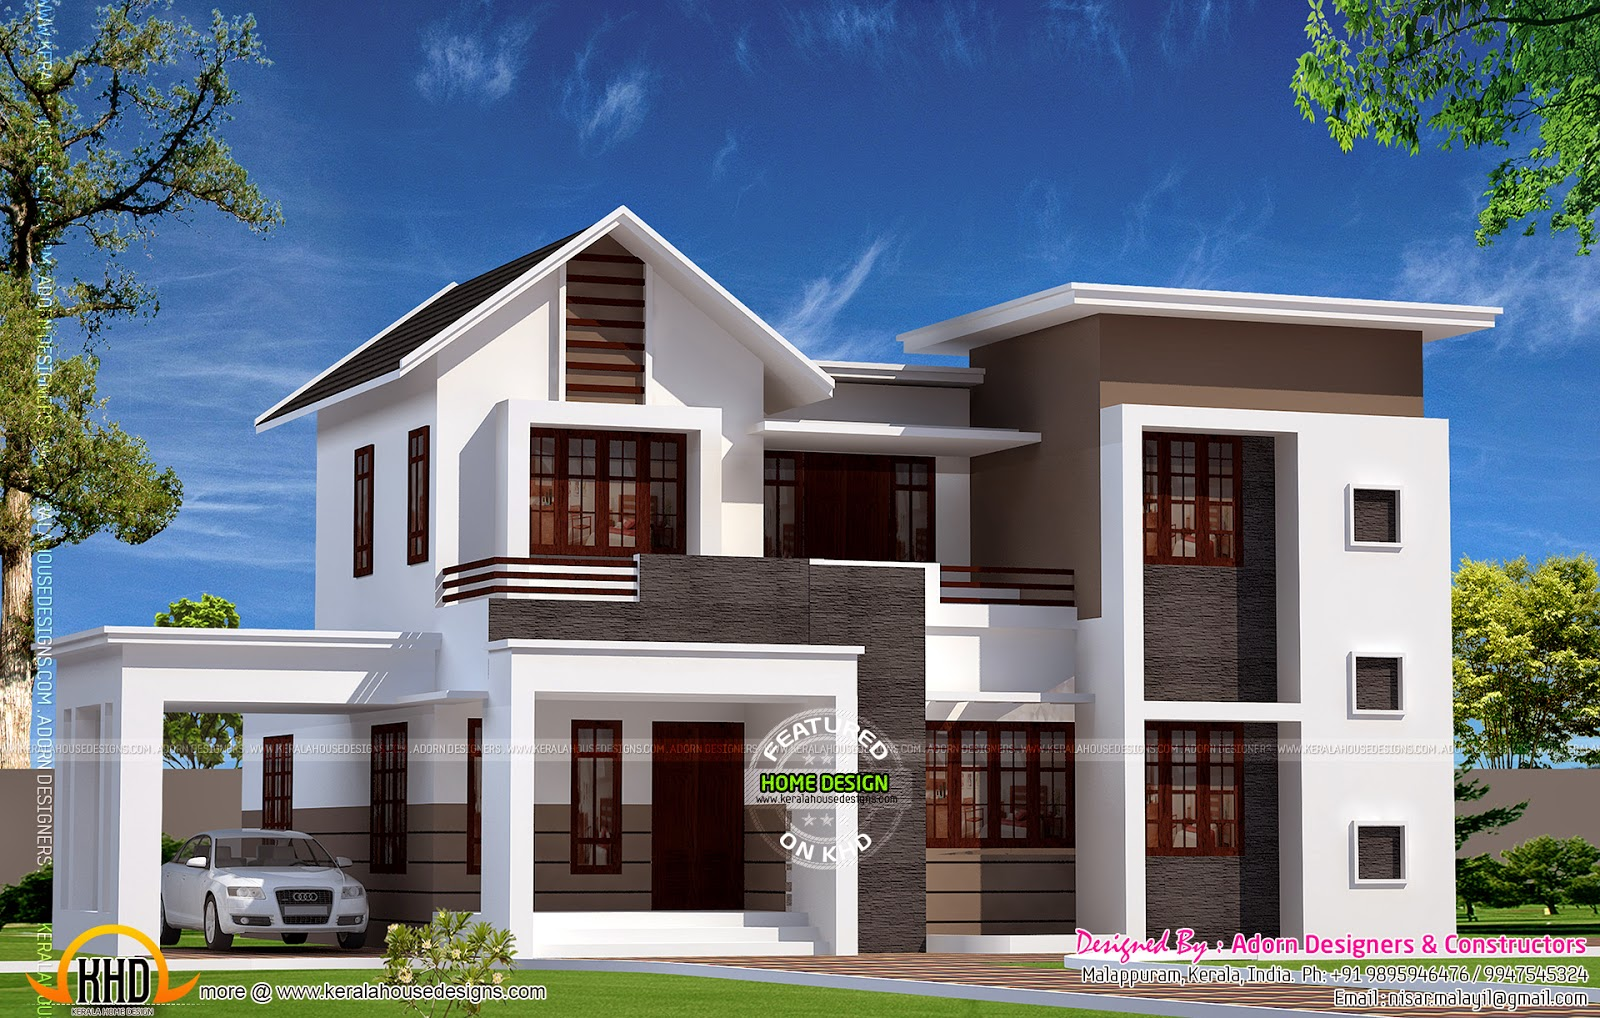 New house design in 1900 sq feet kerala home design and for Home plans and designs